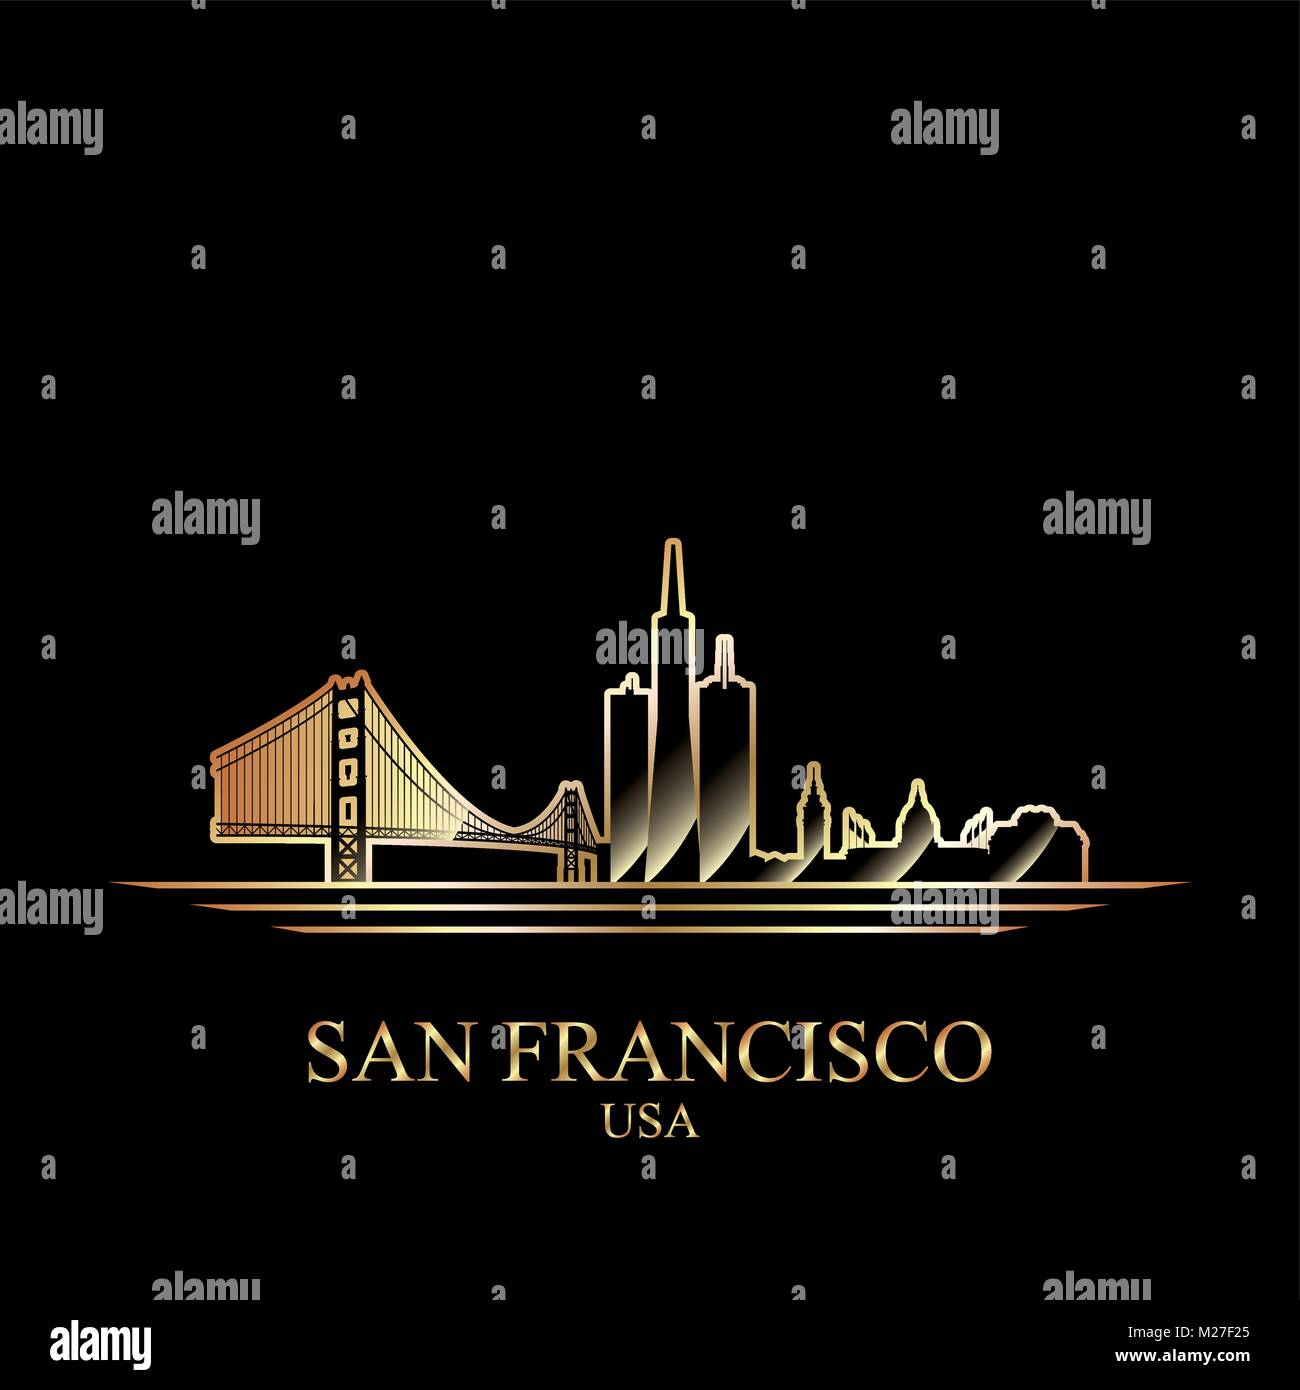 Silhouette d'or de San Francisco sur fond noir, vector illustration Photo Stock